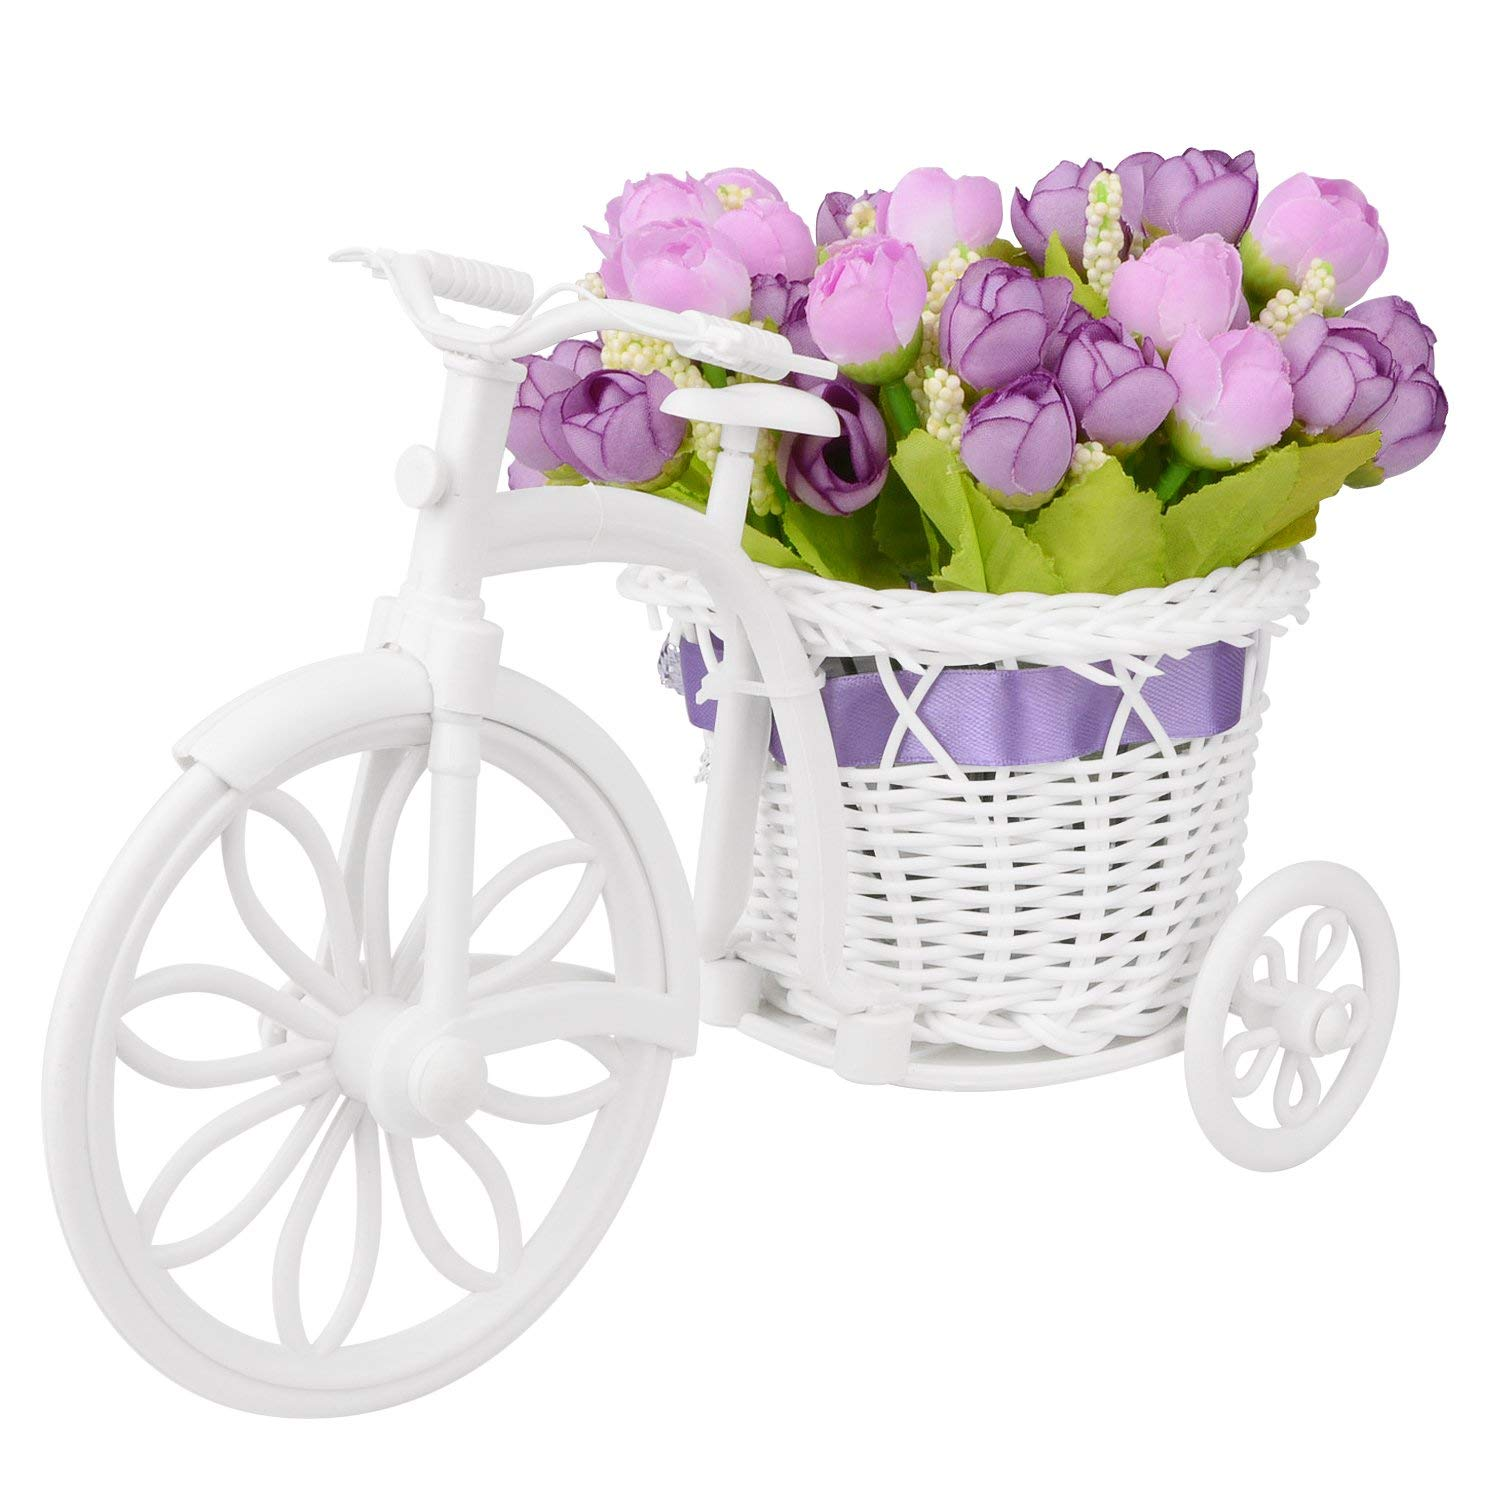 Takefuns Small Artificial Flowers Garden Nostalgic Bicycle Artificial Flower Decor Plant Stand Mini Garden for Home Wedding Decoration (Purple)